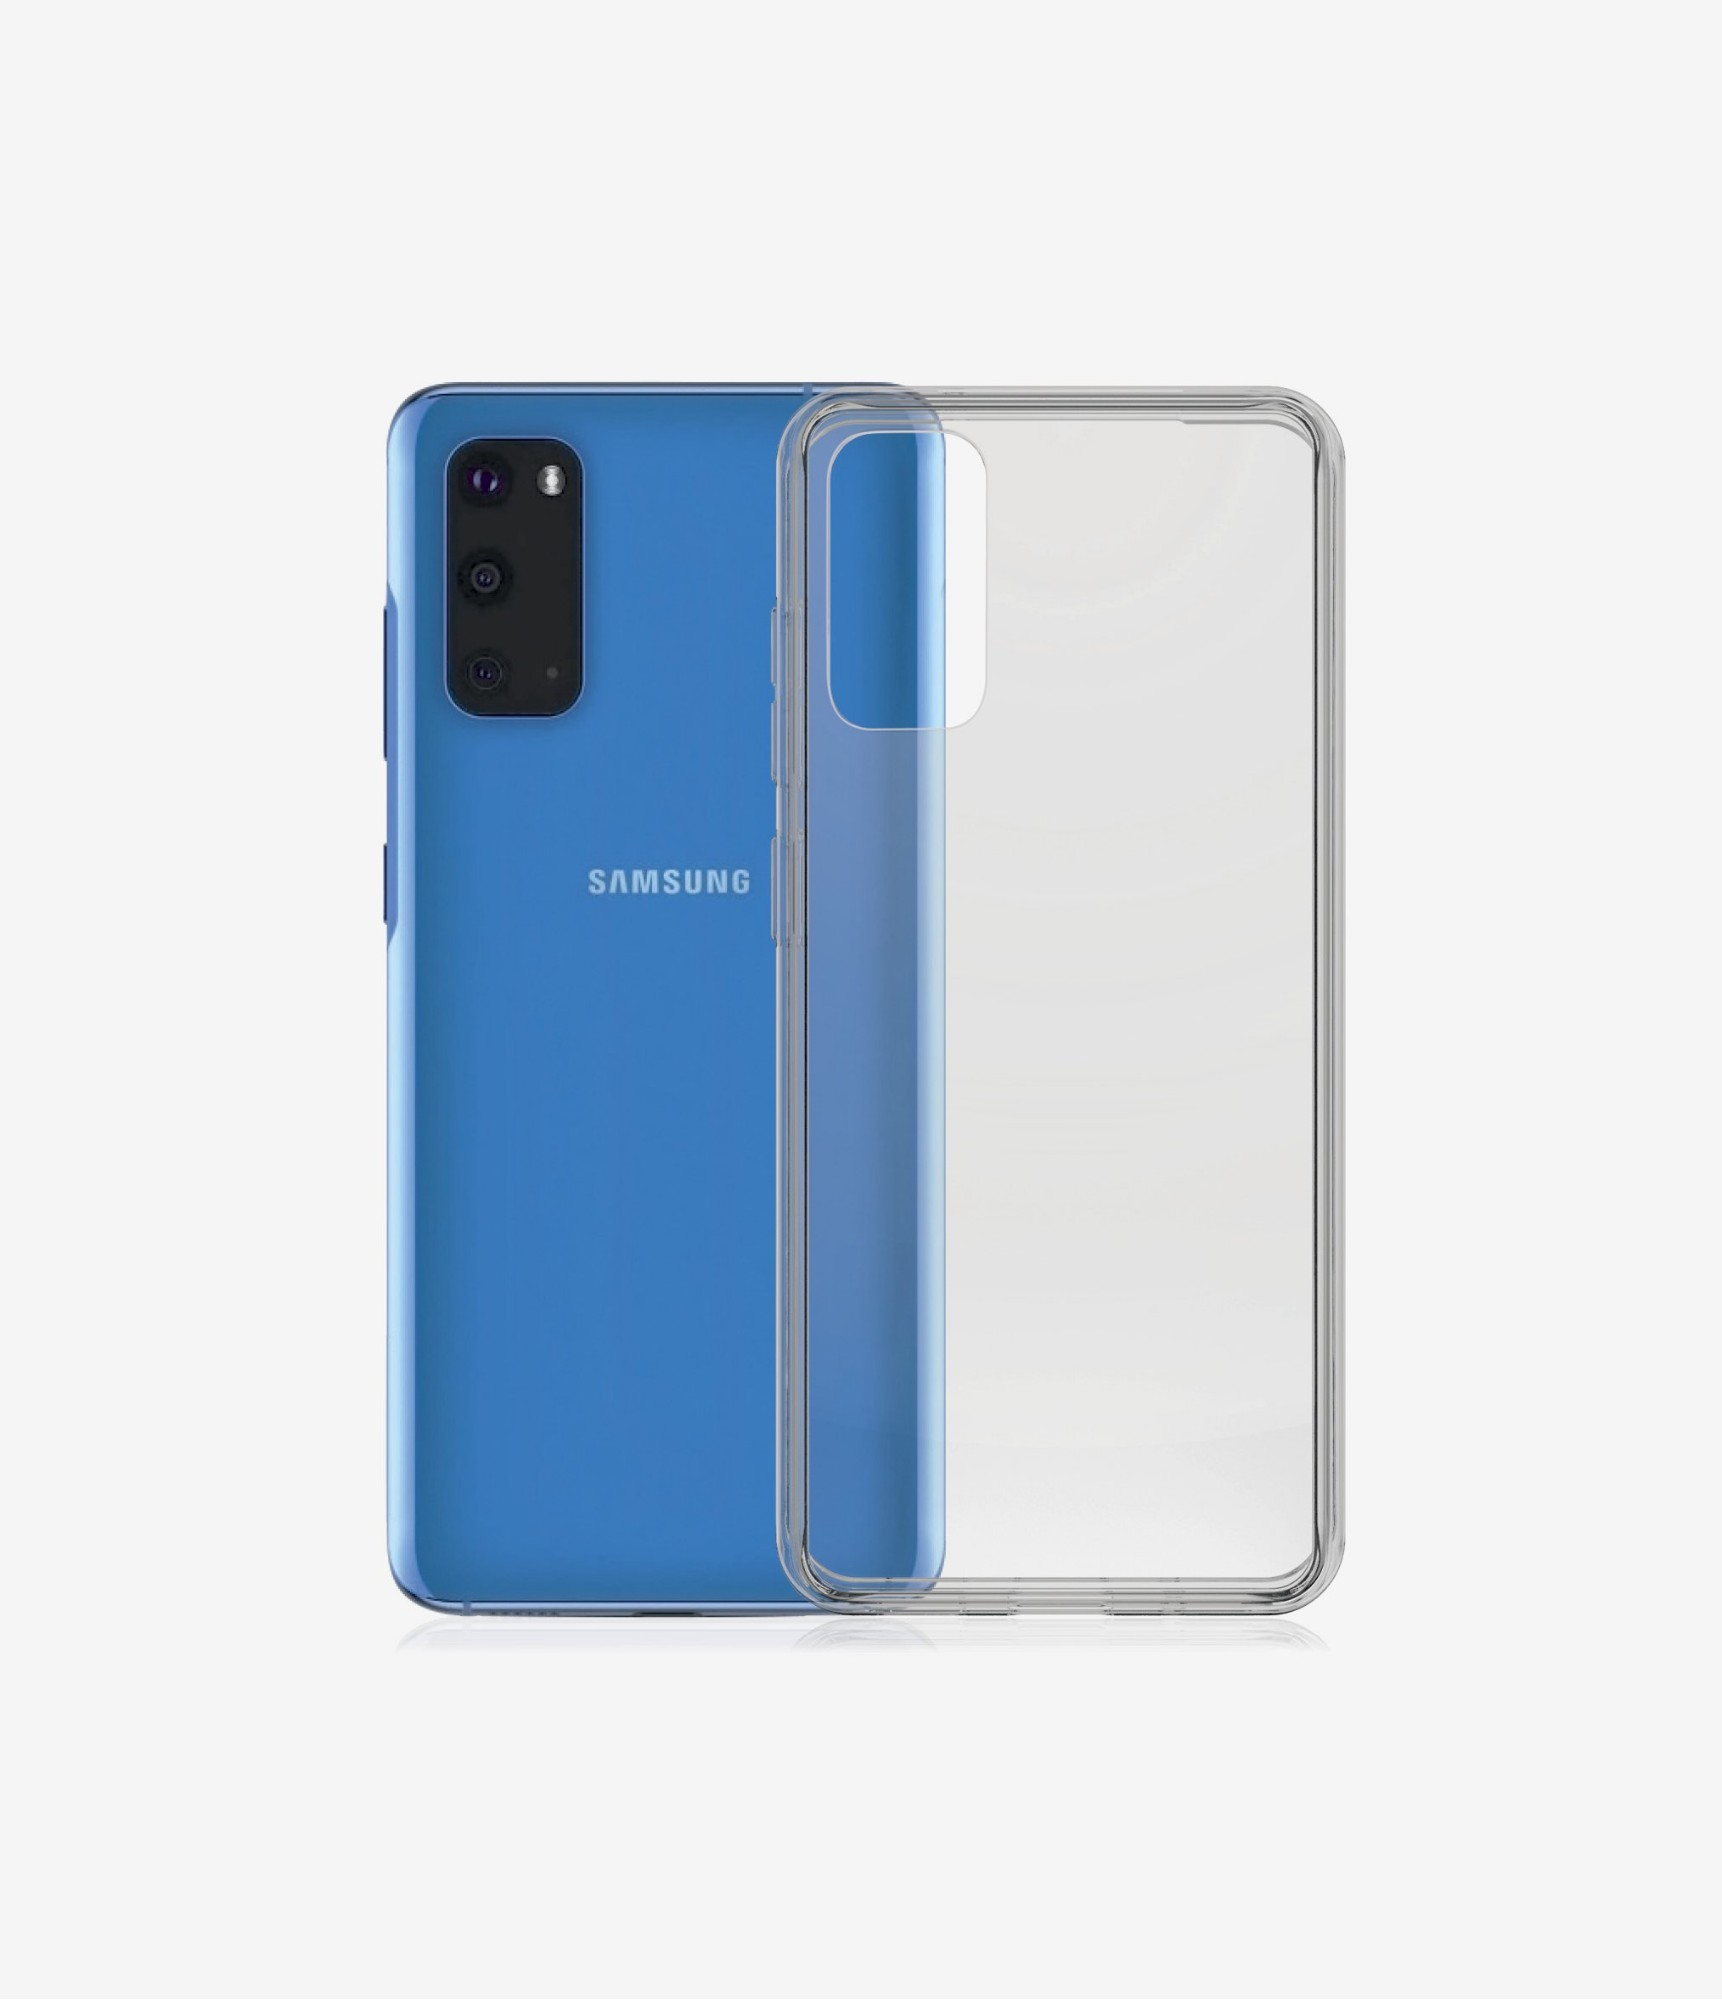 CLEARCASE GALAXY NEW S-SERIES